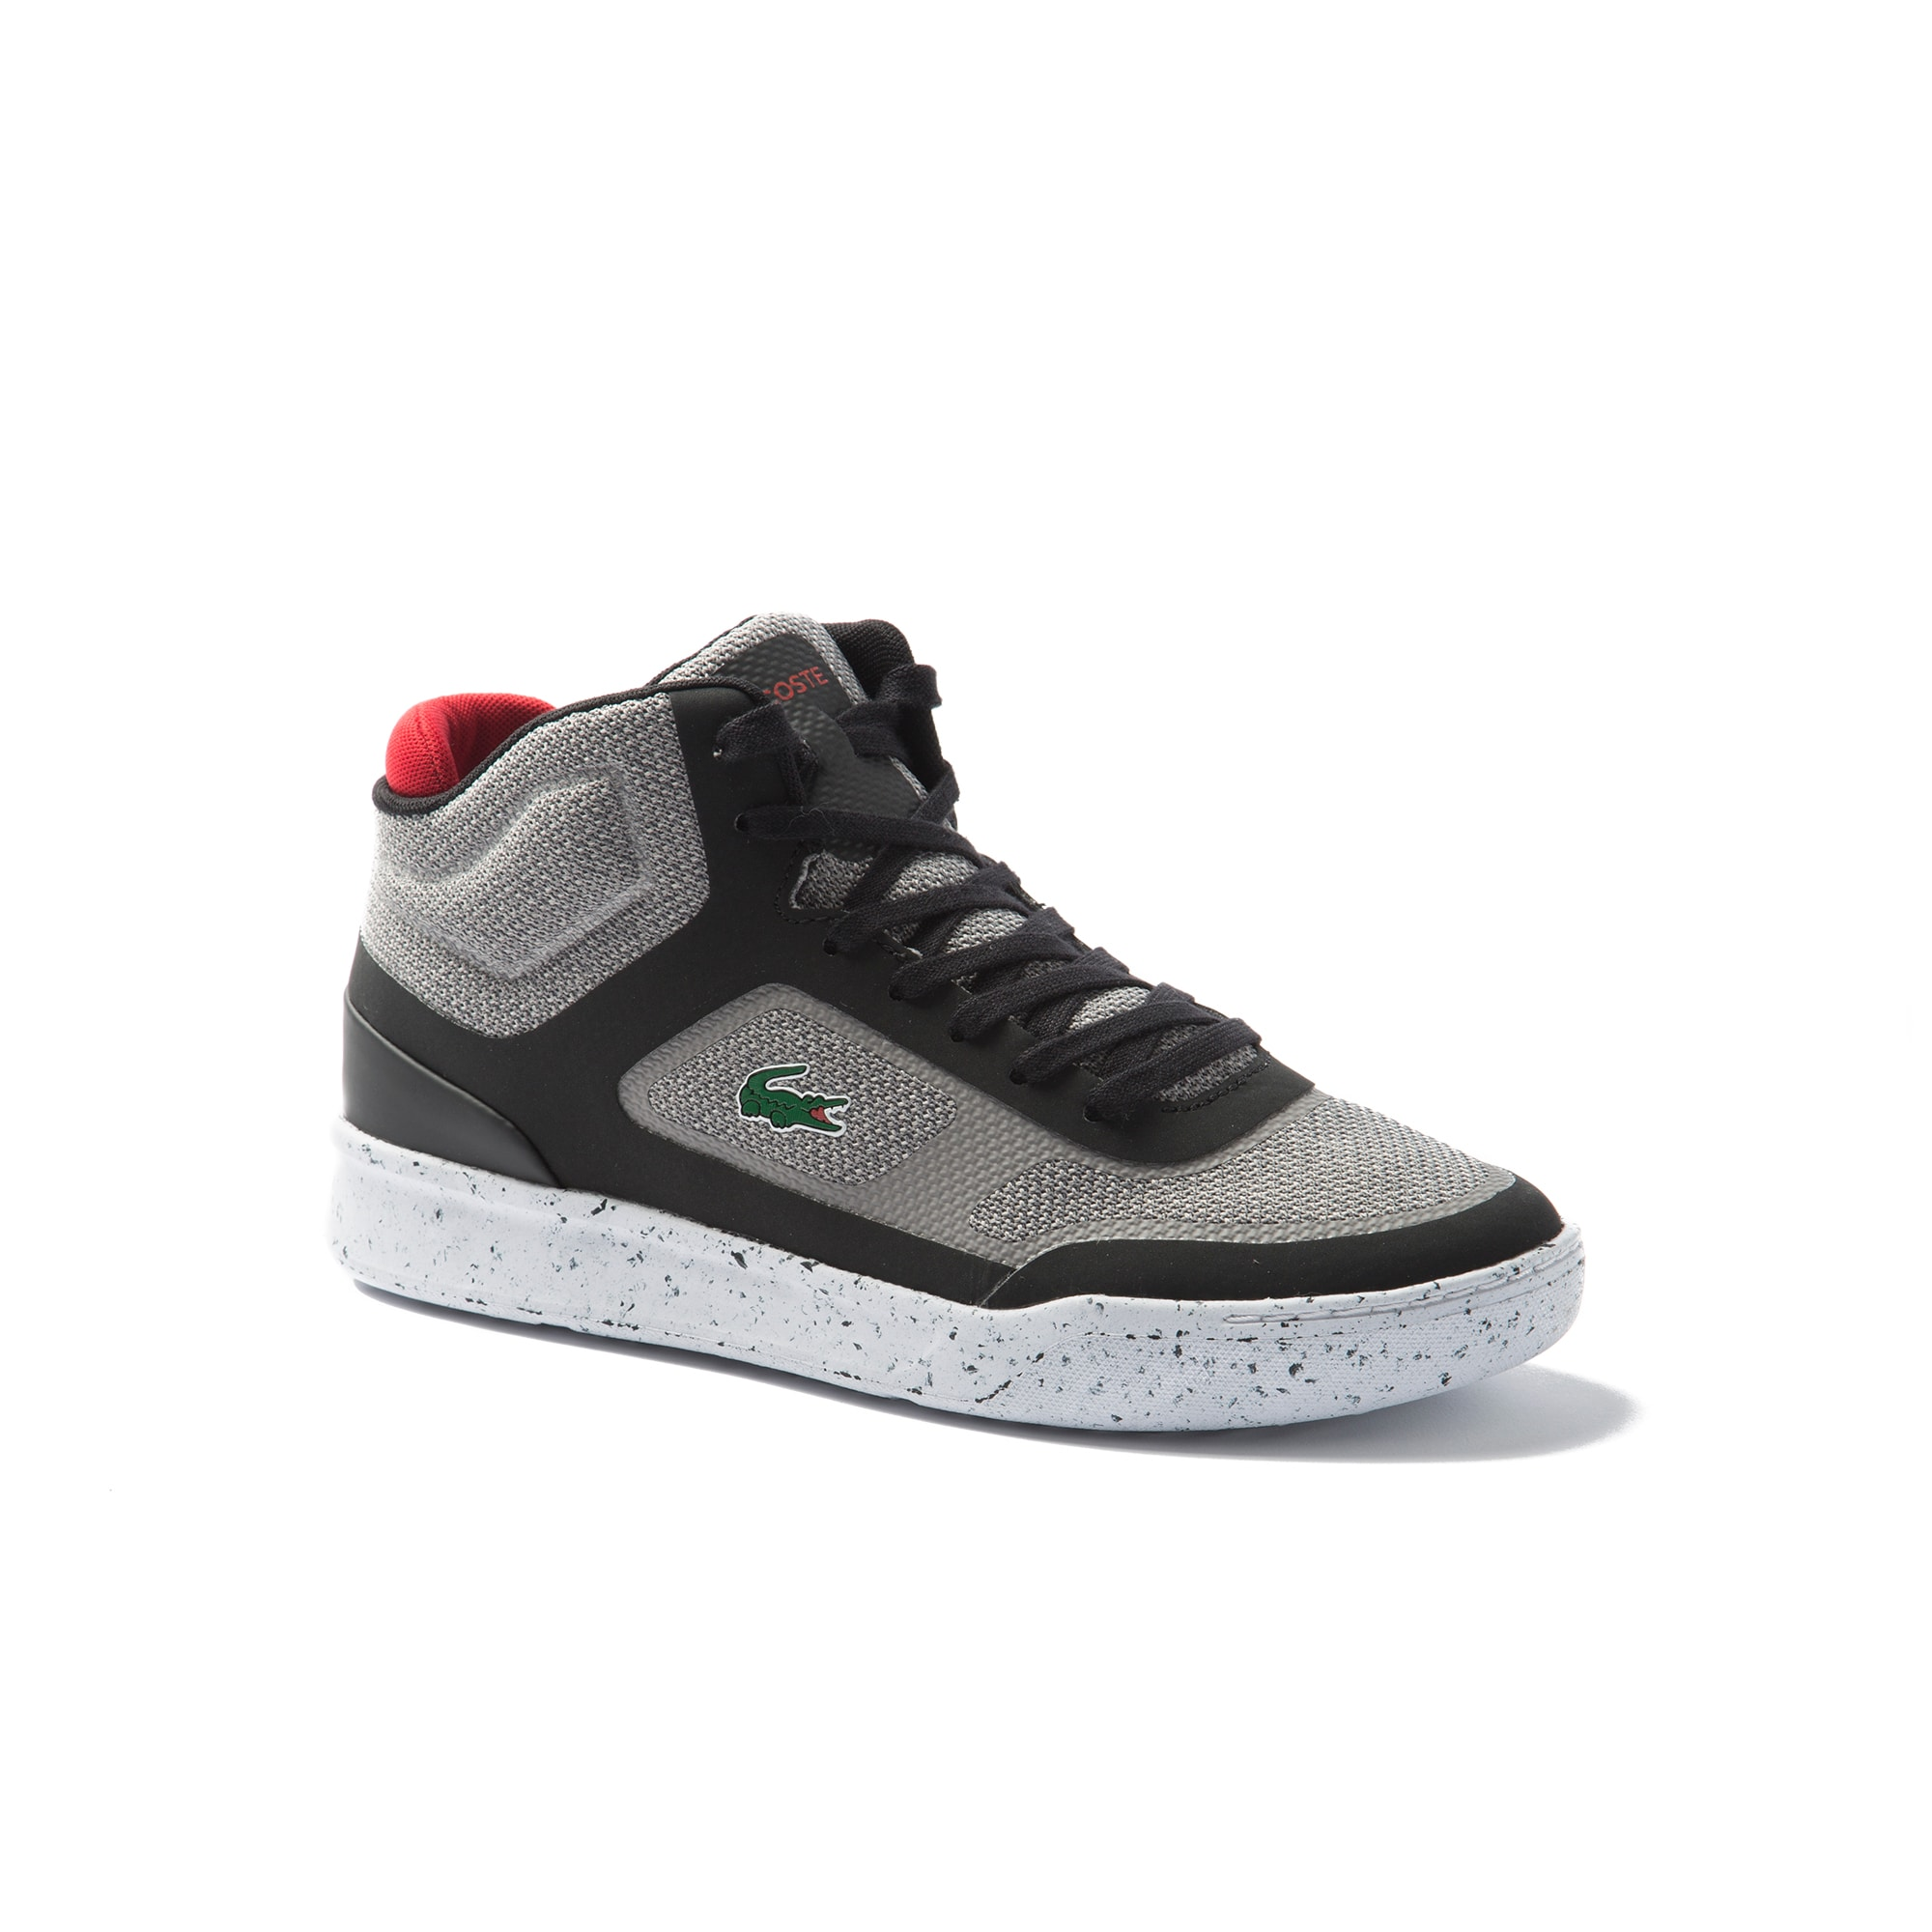 Men's Explorateur Sport Mid Piqué Sneakers